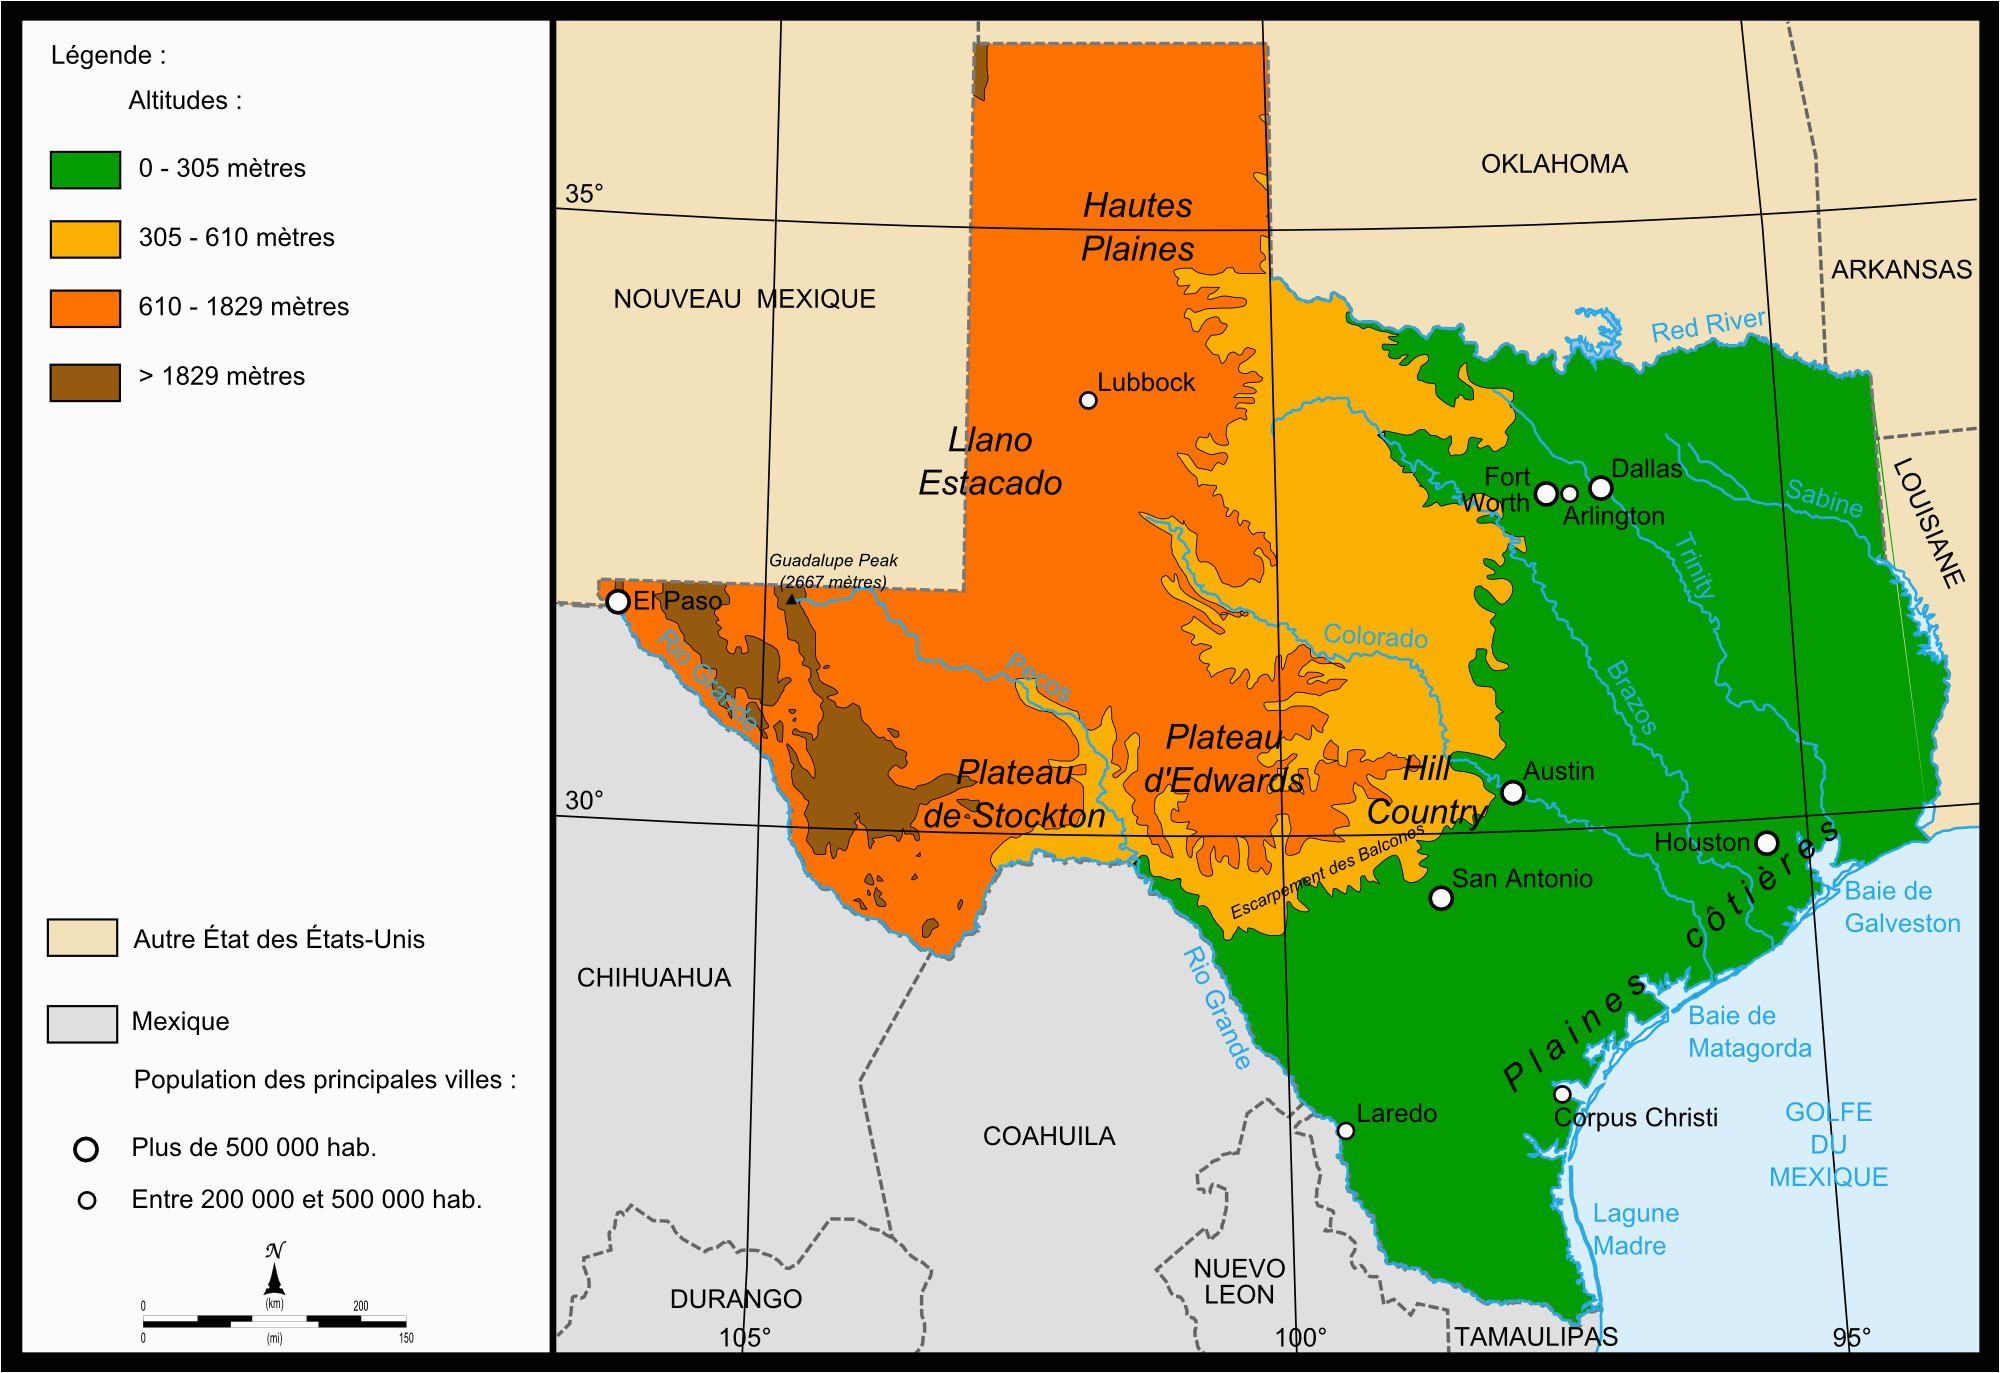 Geography Of Texas Map Geographical Maps Of Texas ... on geography books, history map, europe map, geography education, geography of india, population geography, map of australia map, geography climate, historical events map, indian geography, geography papers, map of greece, north america map, landforms map, geography game, prime meridian map, environmental geography, altitude map, current day map, italian culture map, ecological economics map, philippine geography, political map, asia map, mountain ranges map, government map, map of, climate map, human geography, the current weather map, geography of science, geographical map, astronomy map, atlas map,